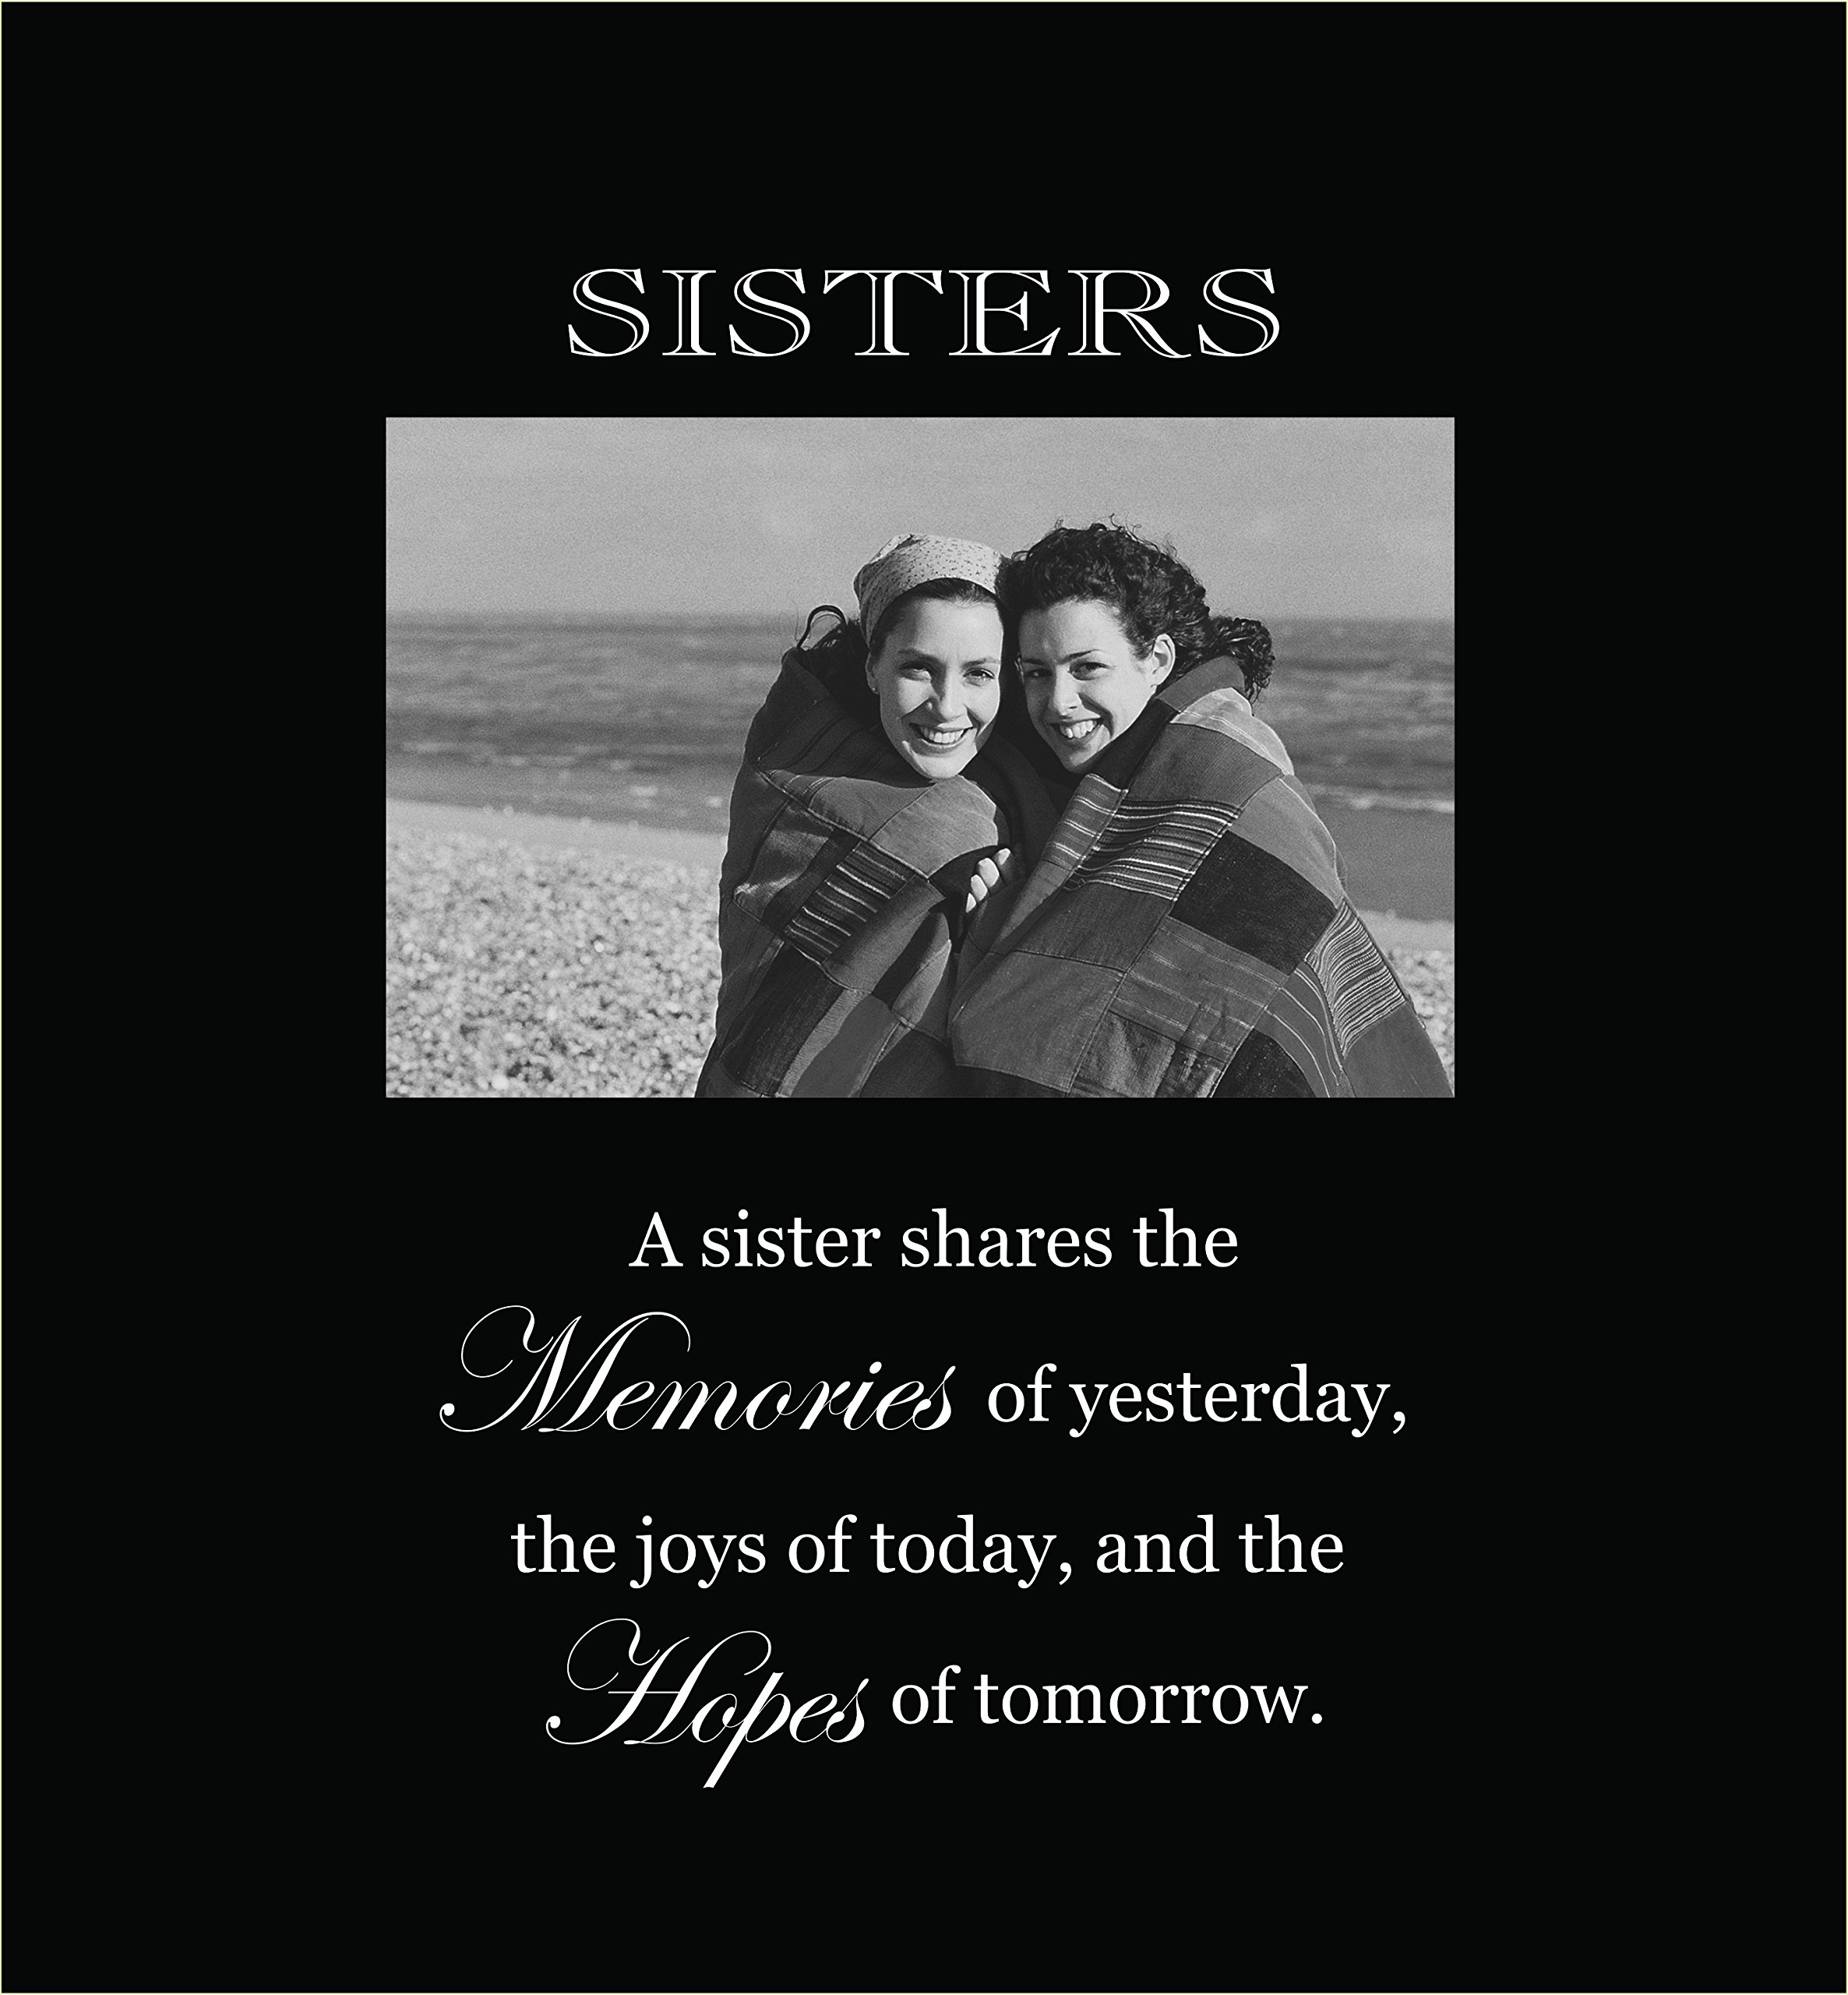 Infusion Gifts 3006-LB Sisters Engraved Photo Frames, Large, Black